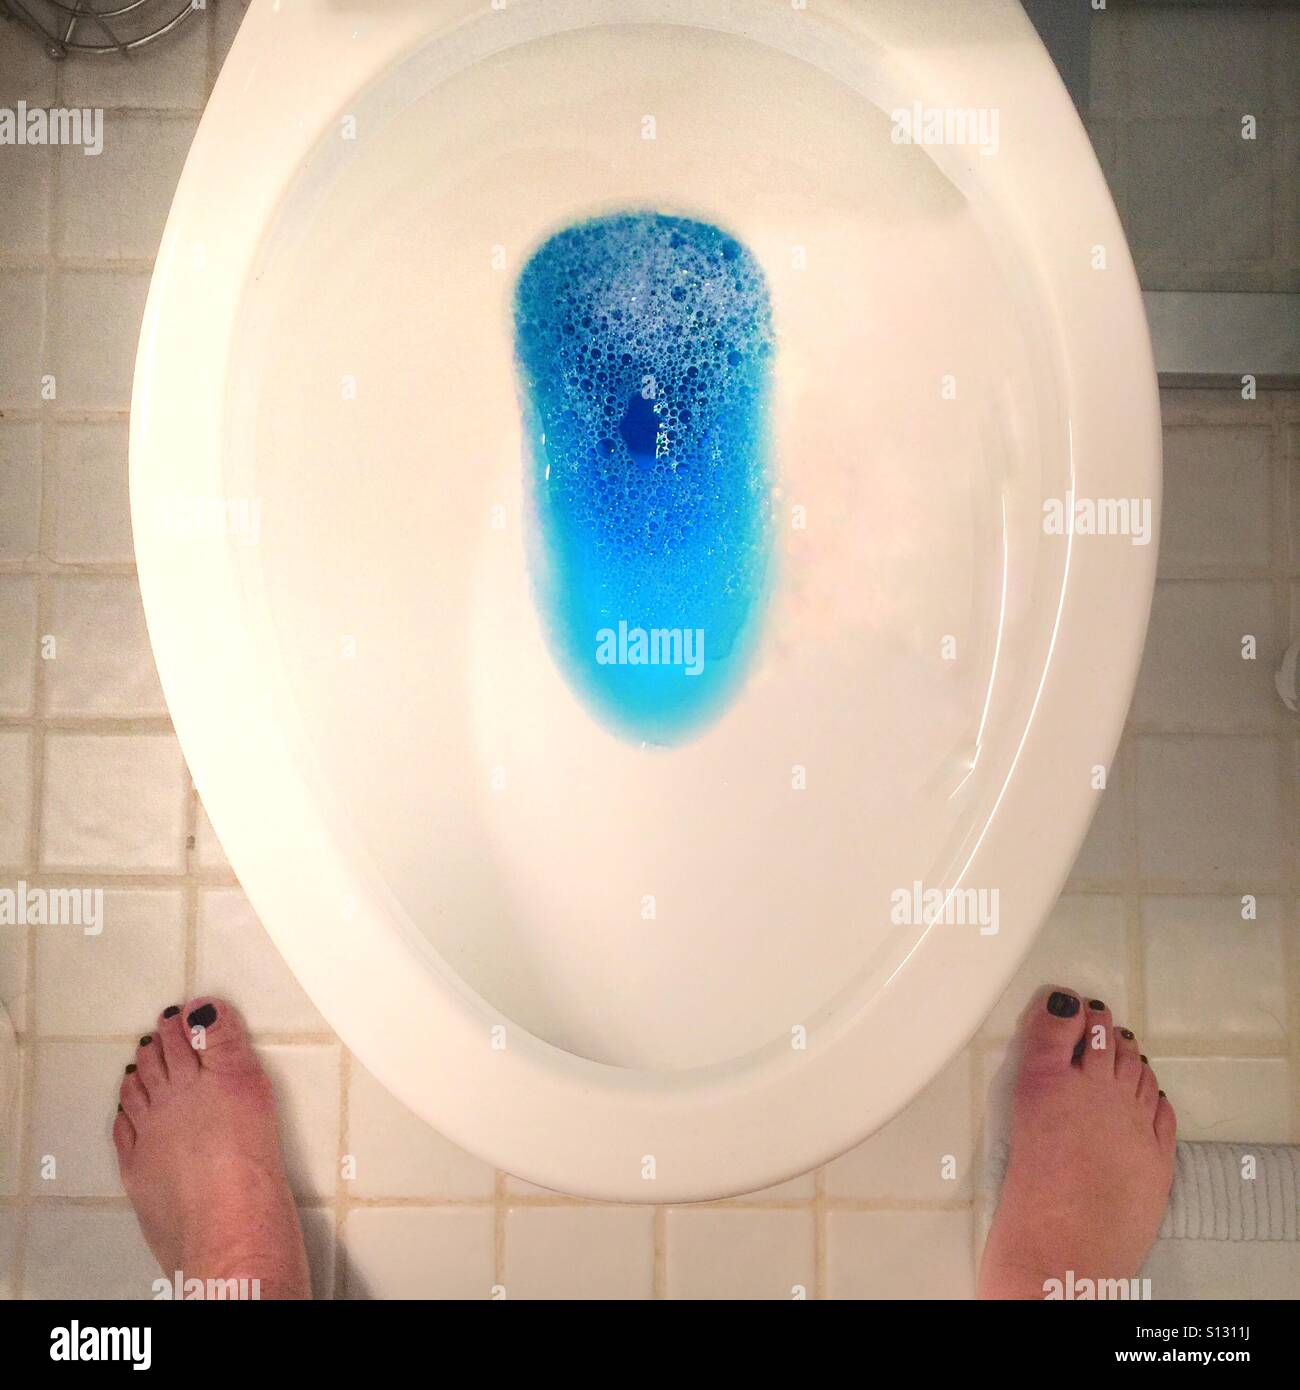 Toilet Bowl High Resolution Stock Photography And Images Alamy